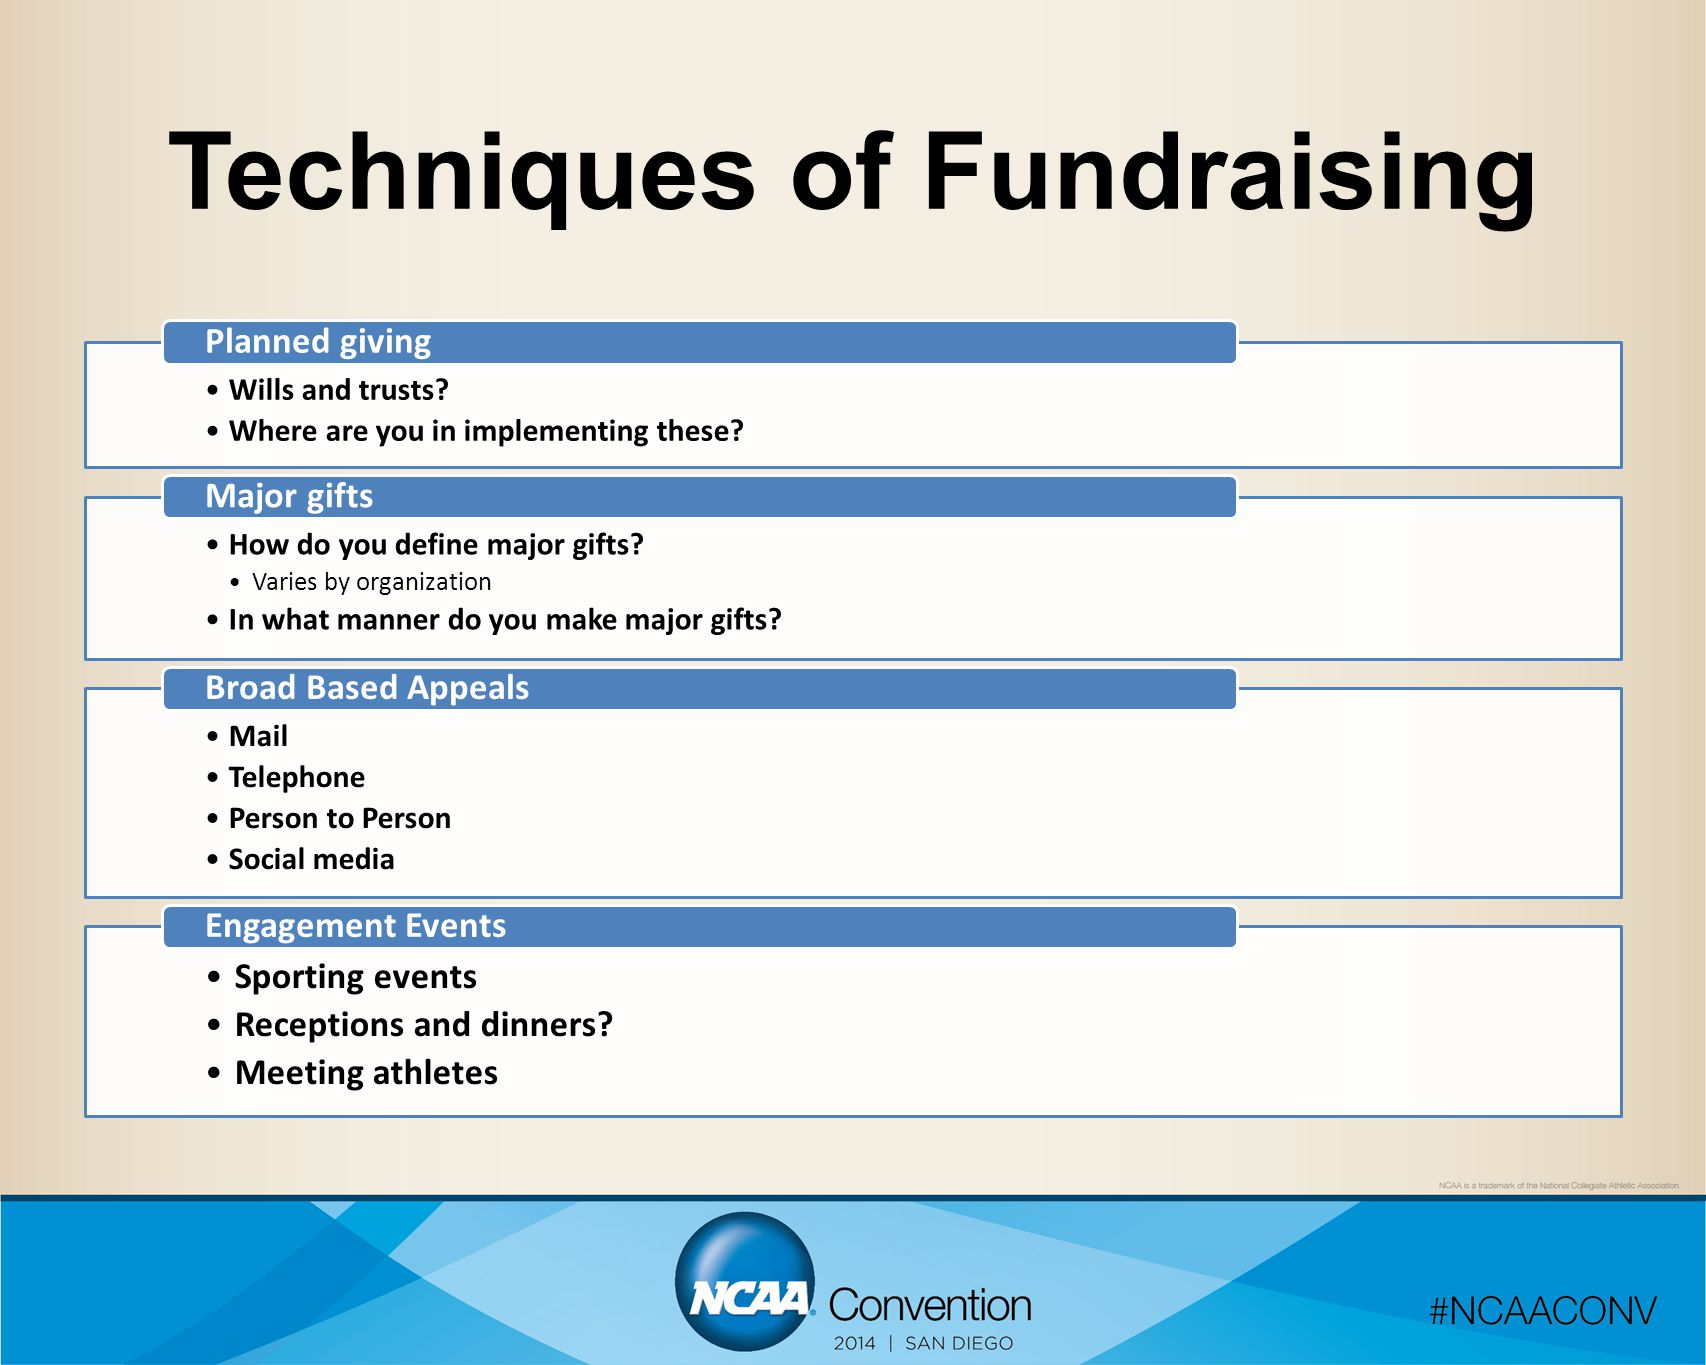 Techniques of Fundraising